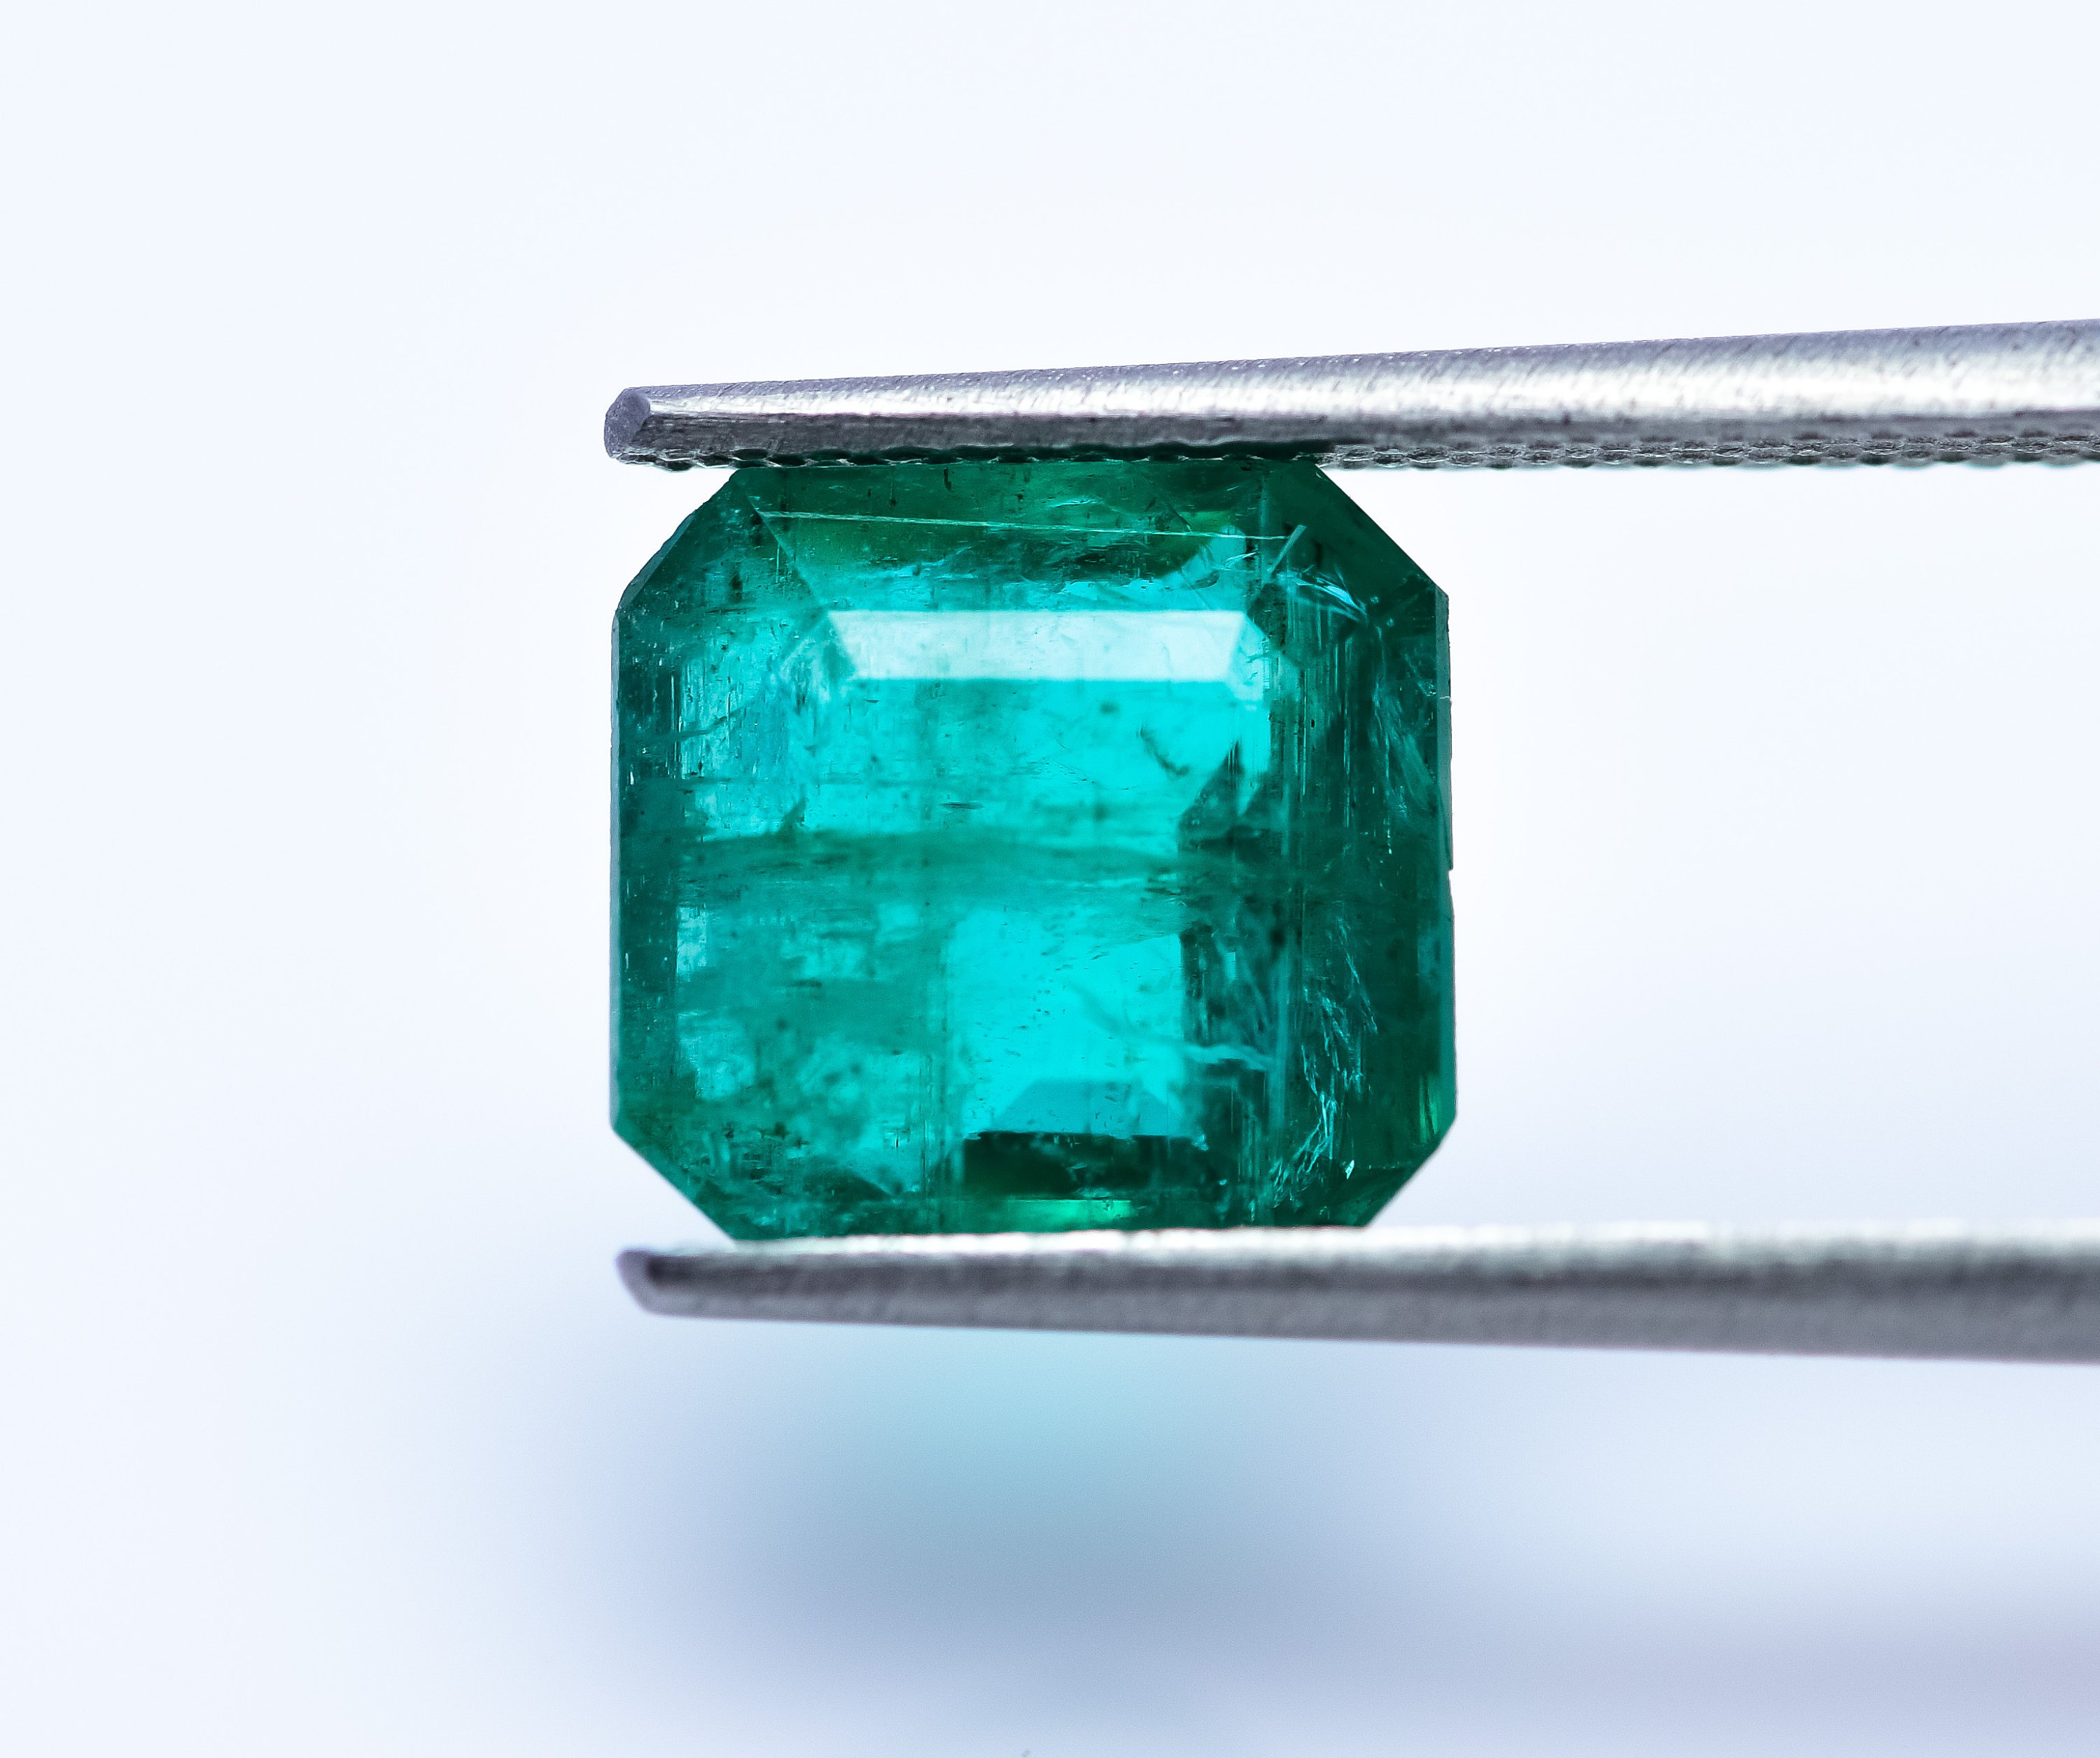 #3.16 ct IGI Certified Natural Green Emerald Loose Gemstone oil only